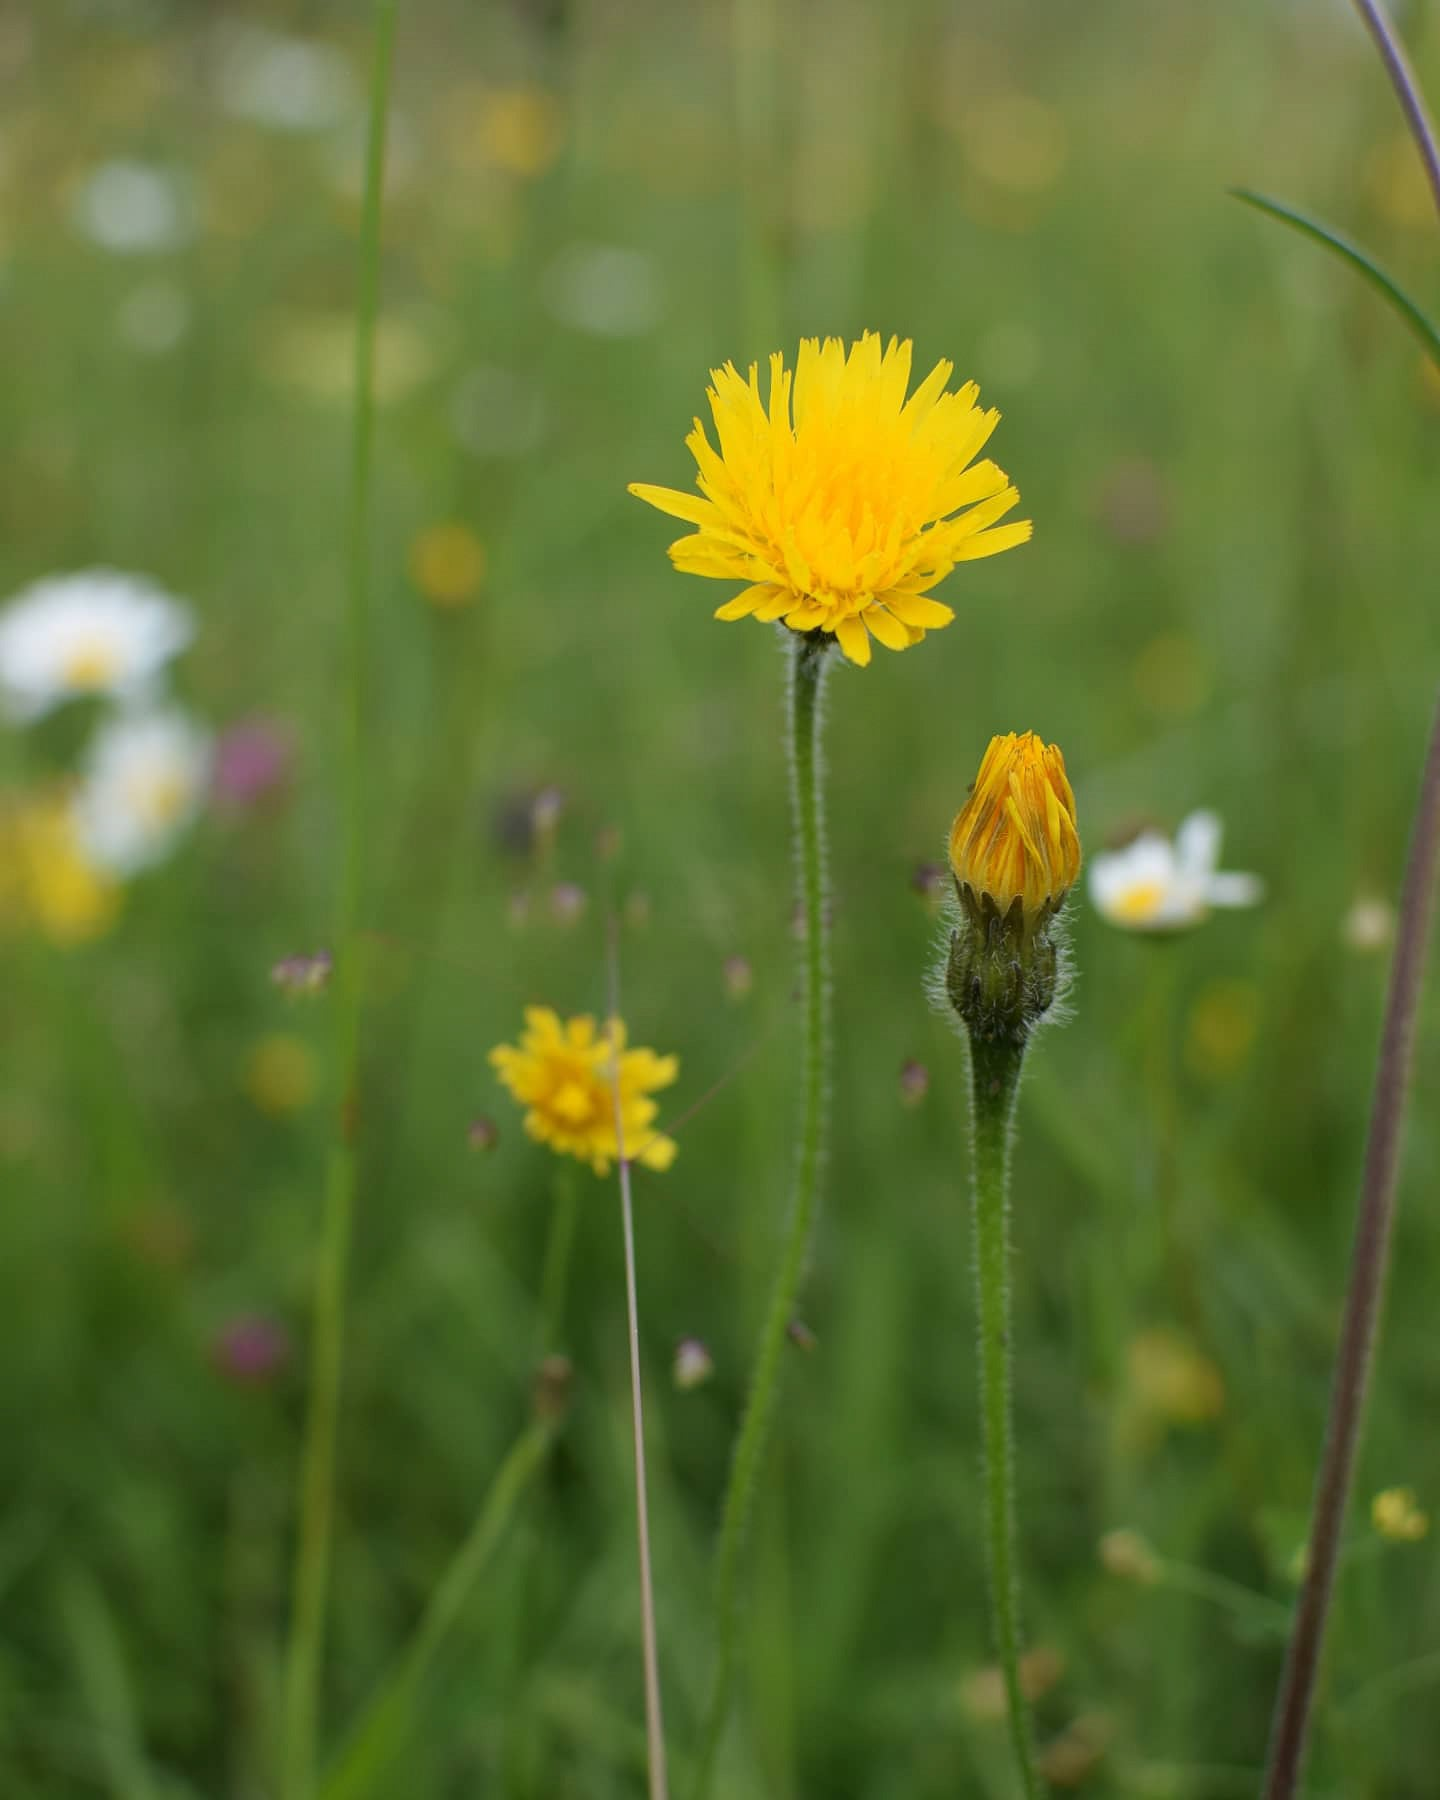 happy knapweed, yellow flowers in the green grass